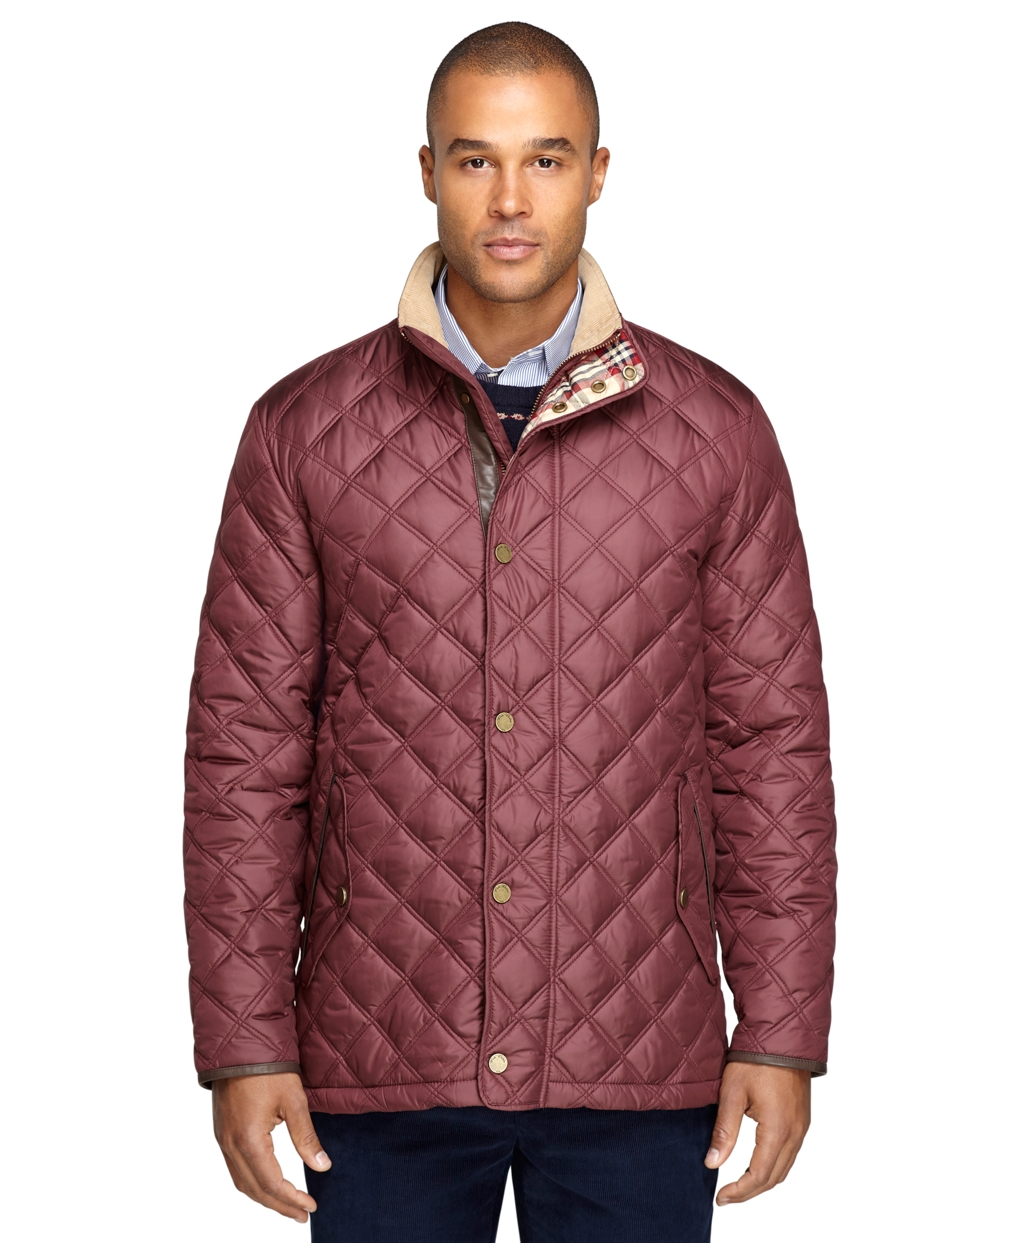 Lyst - Brooks brothers Quilted Jacket in Purple for Men : purple quilted jacket - Adamdwight.com